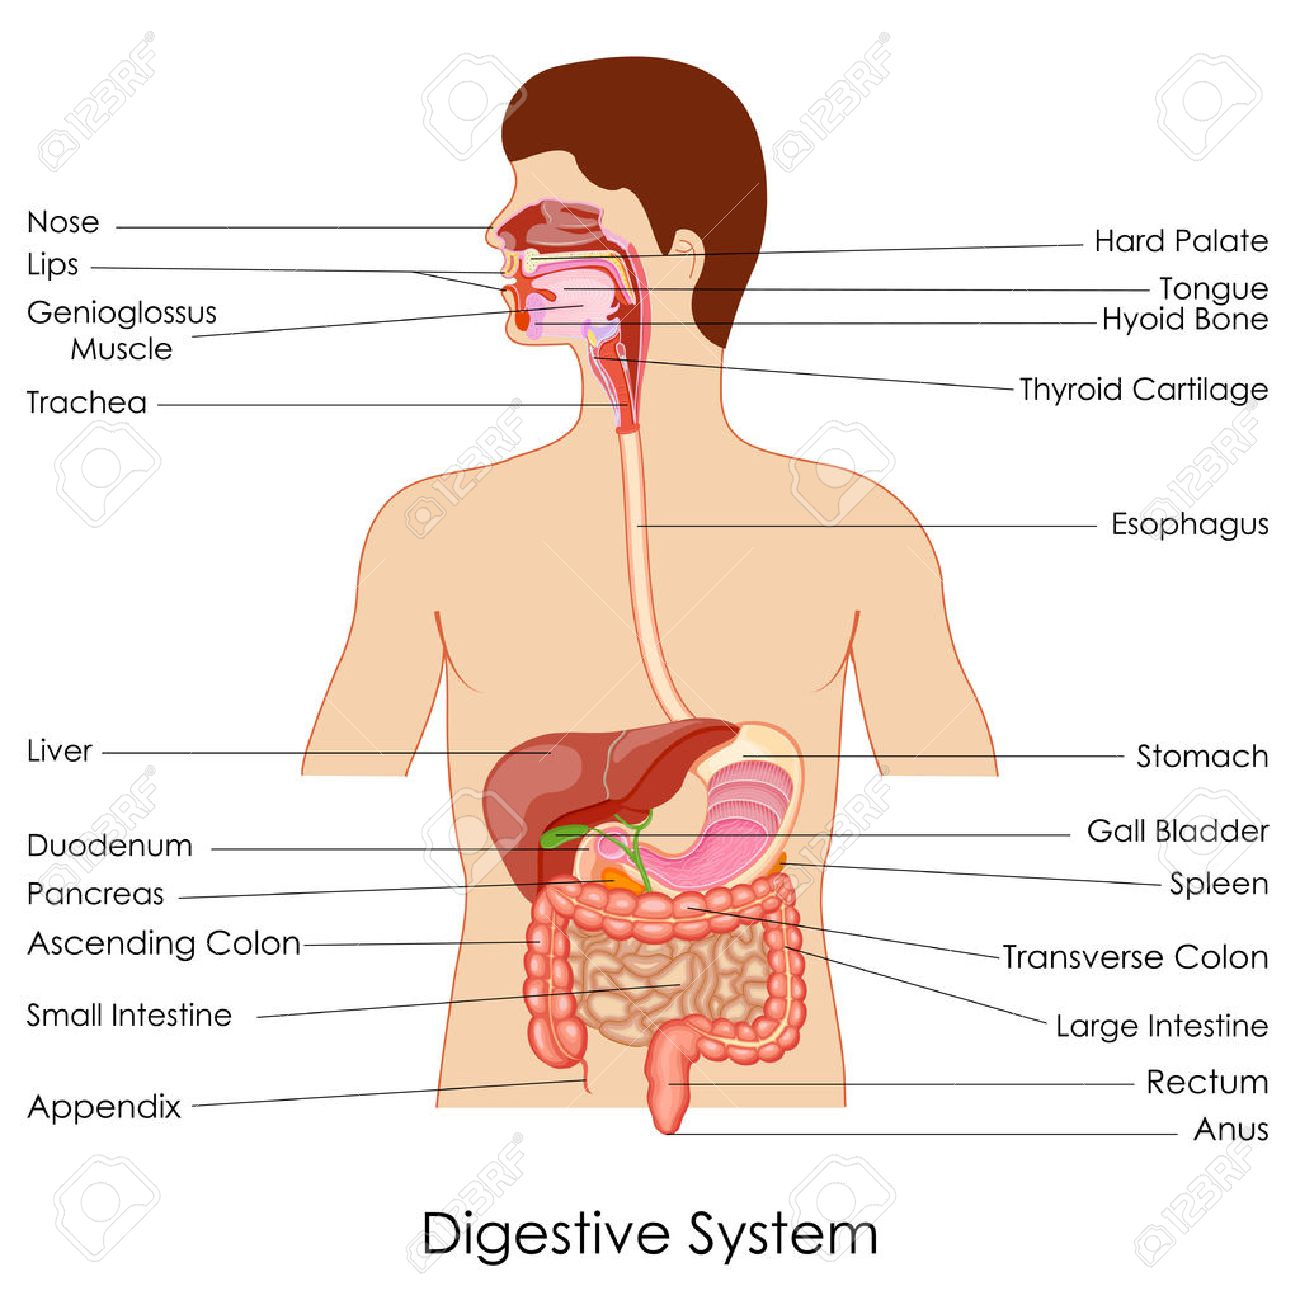 Digestive System Diagram Examples